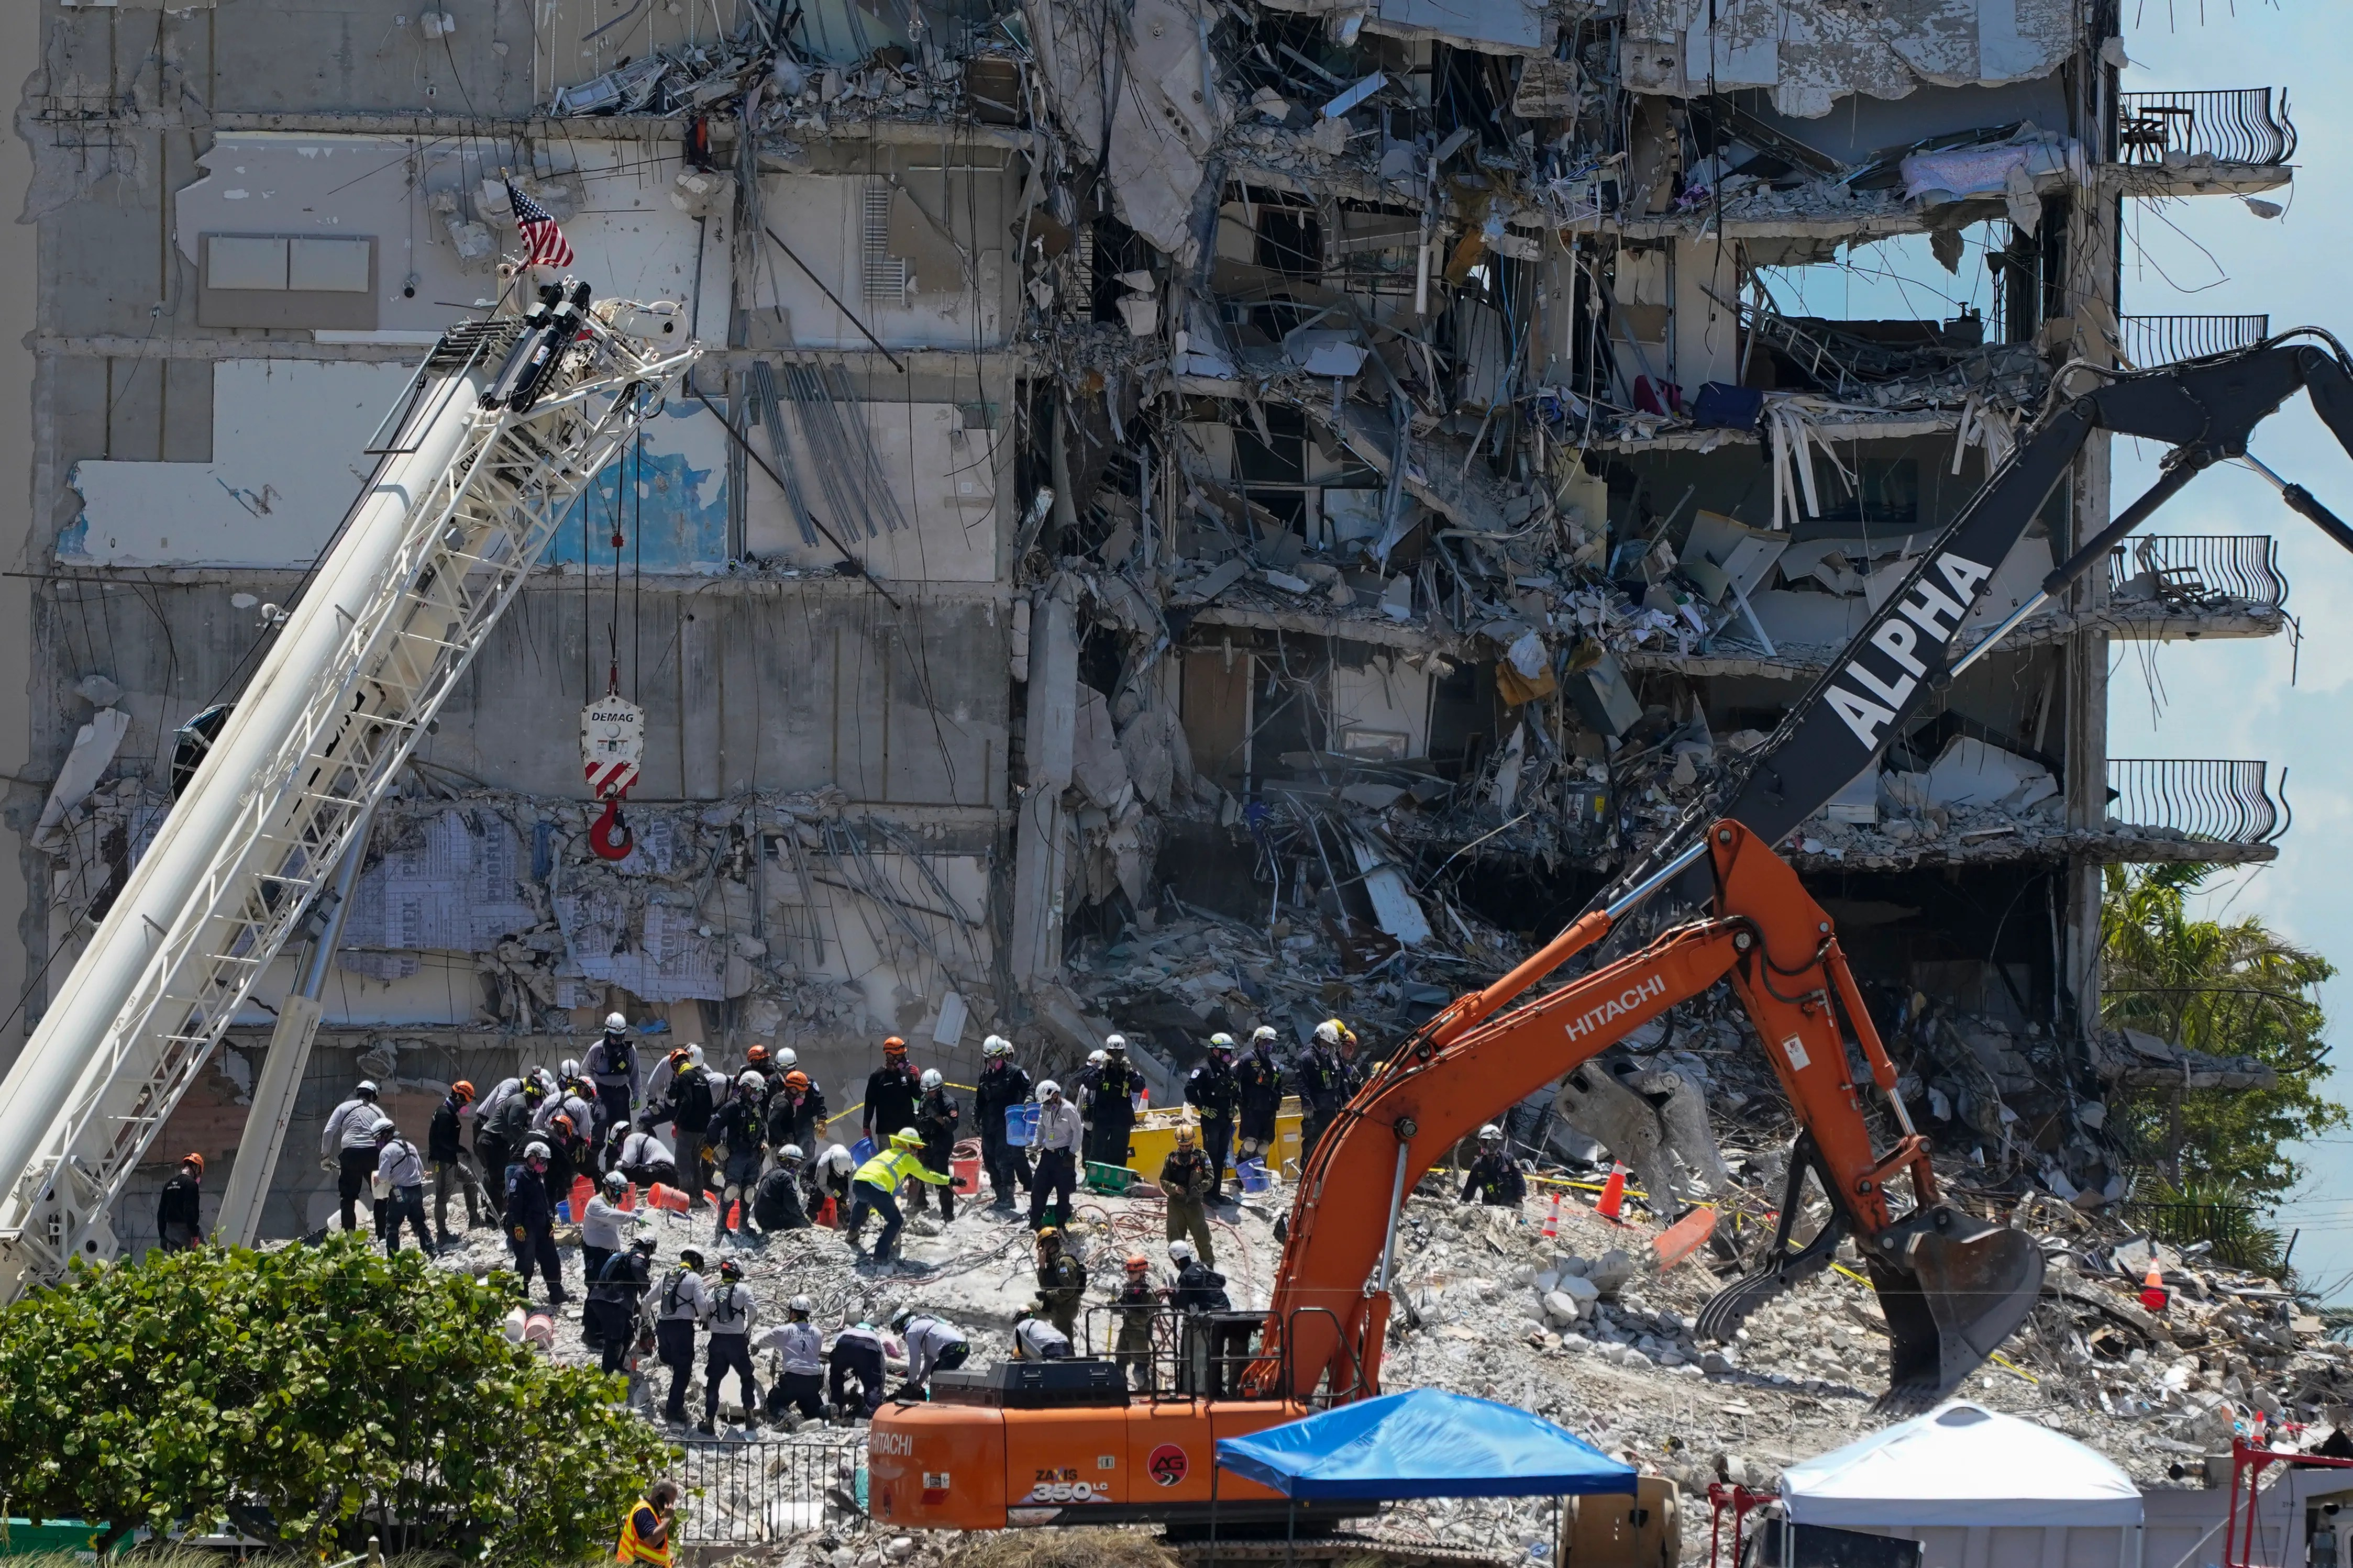 Search and rescue personnel work atop the rubble at the Champlain Towers South condo building, where scores of victims remain missing more than a week after it partially collapsed, Friday, July 2, 2021, in Surfside, Fla.